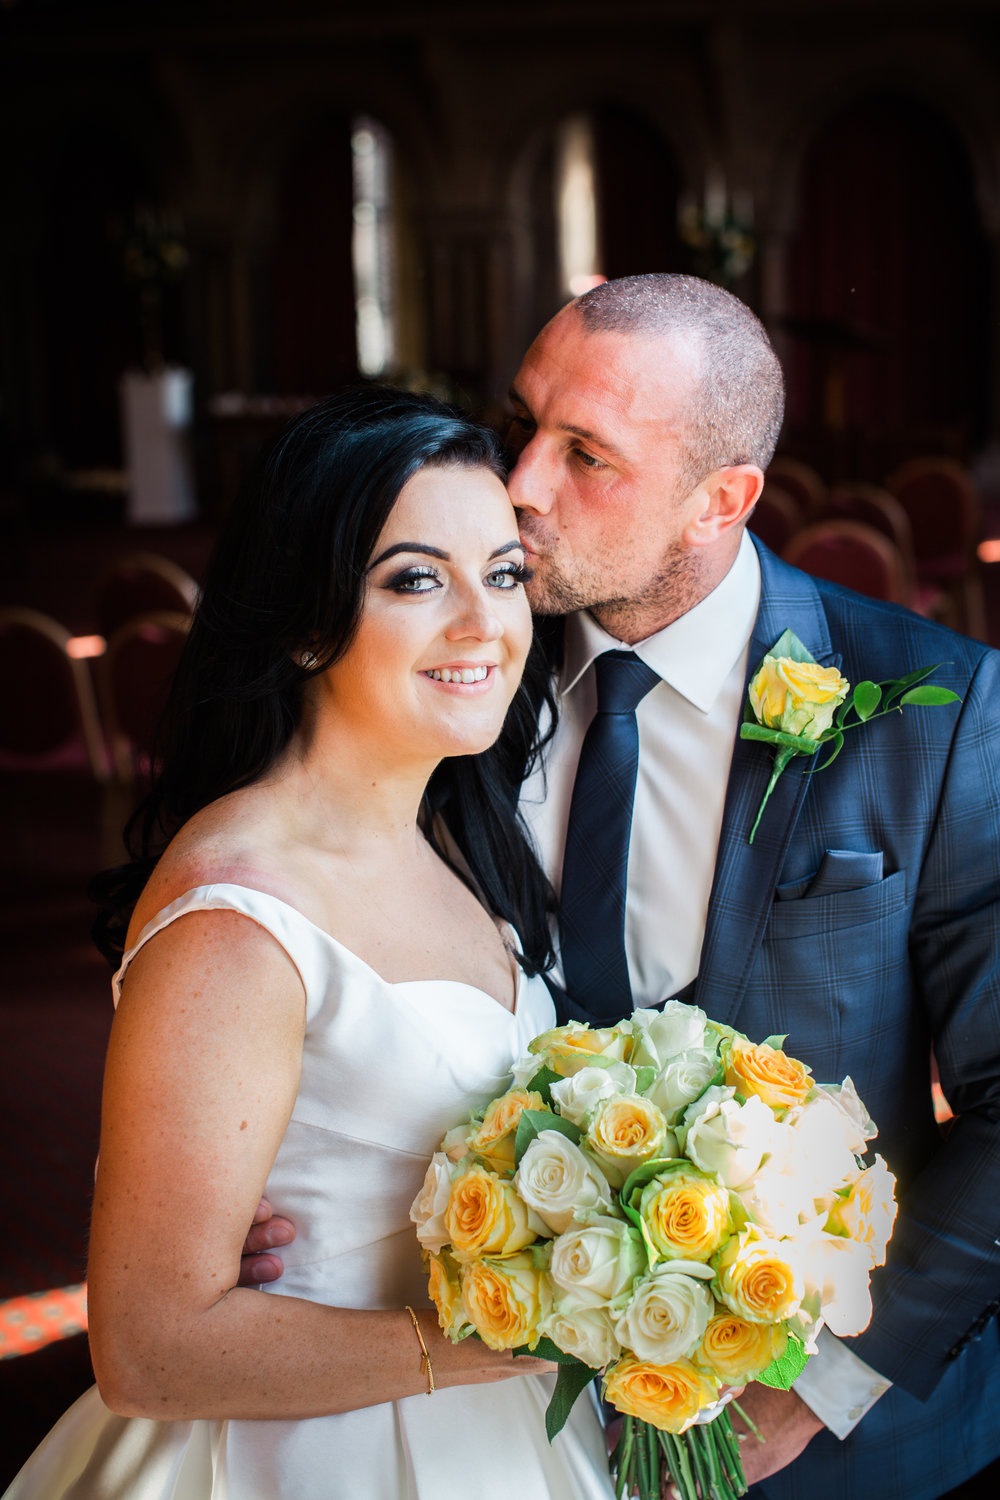 Gary and Danielle - Manchester town hall wedding.